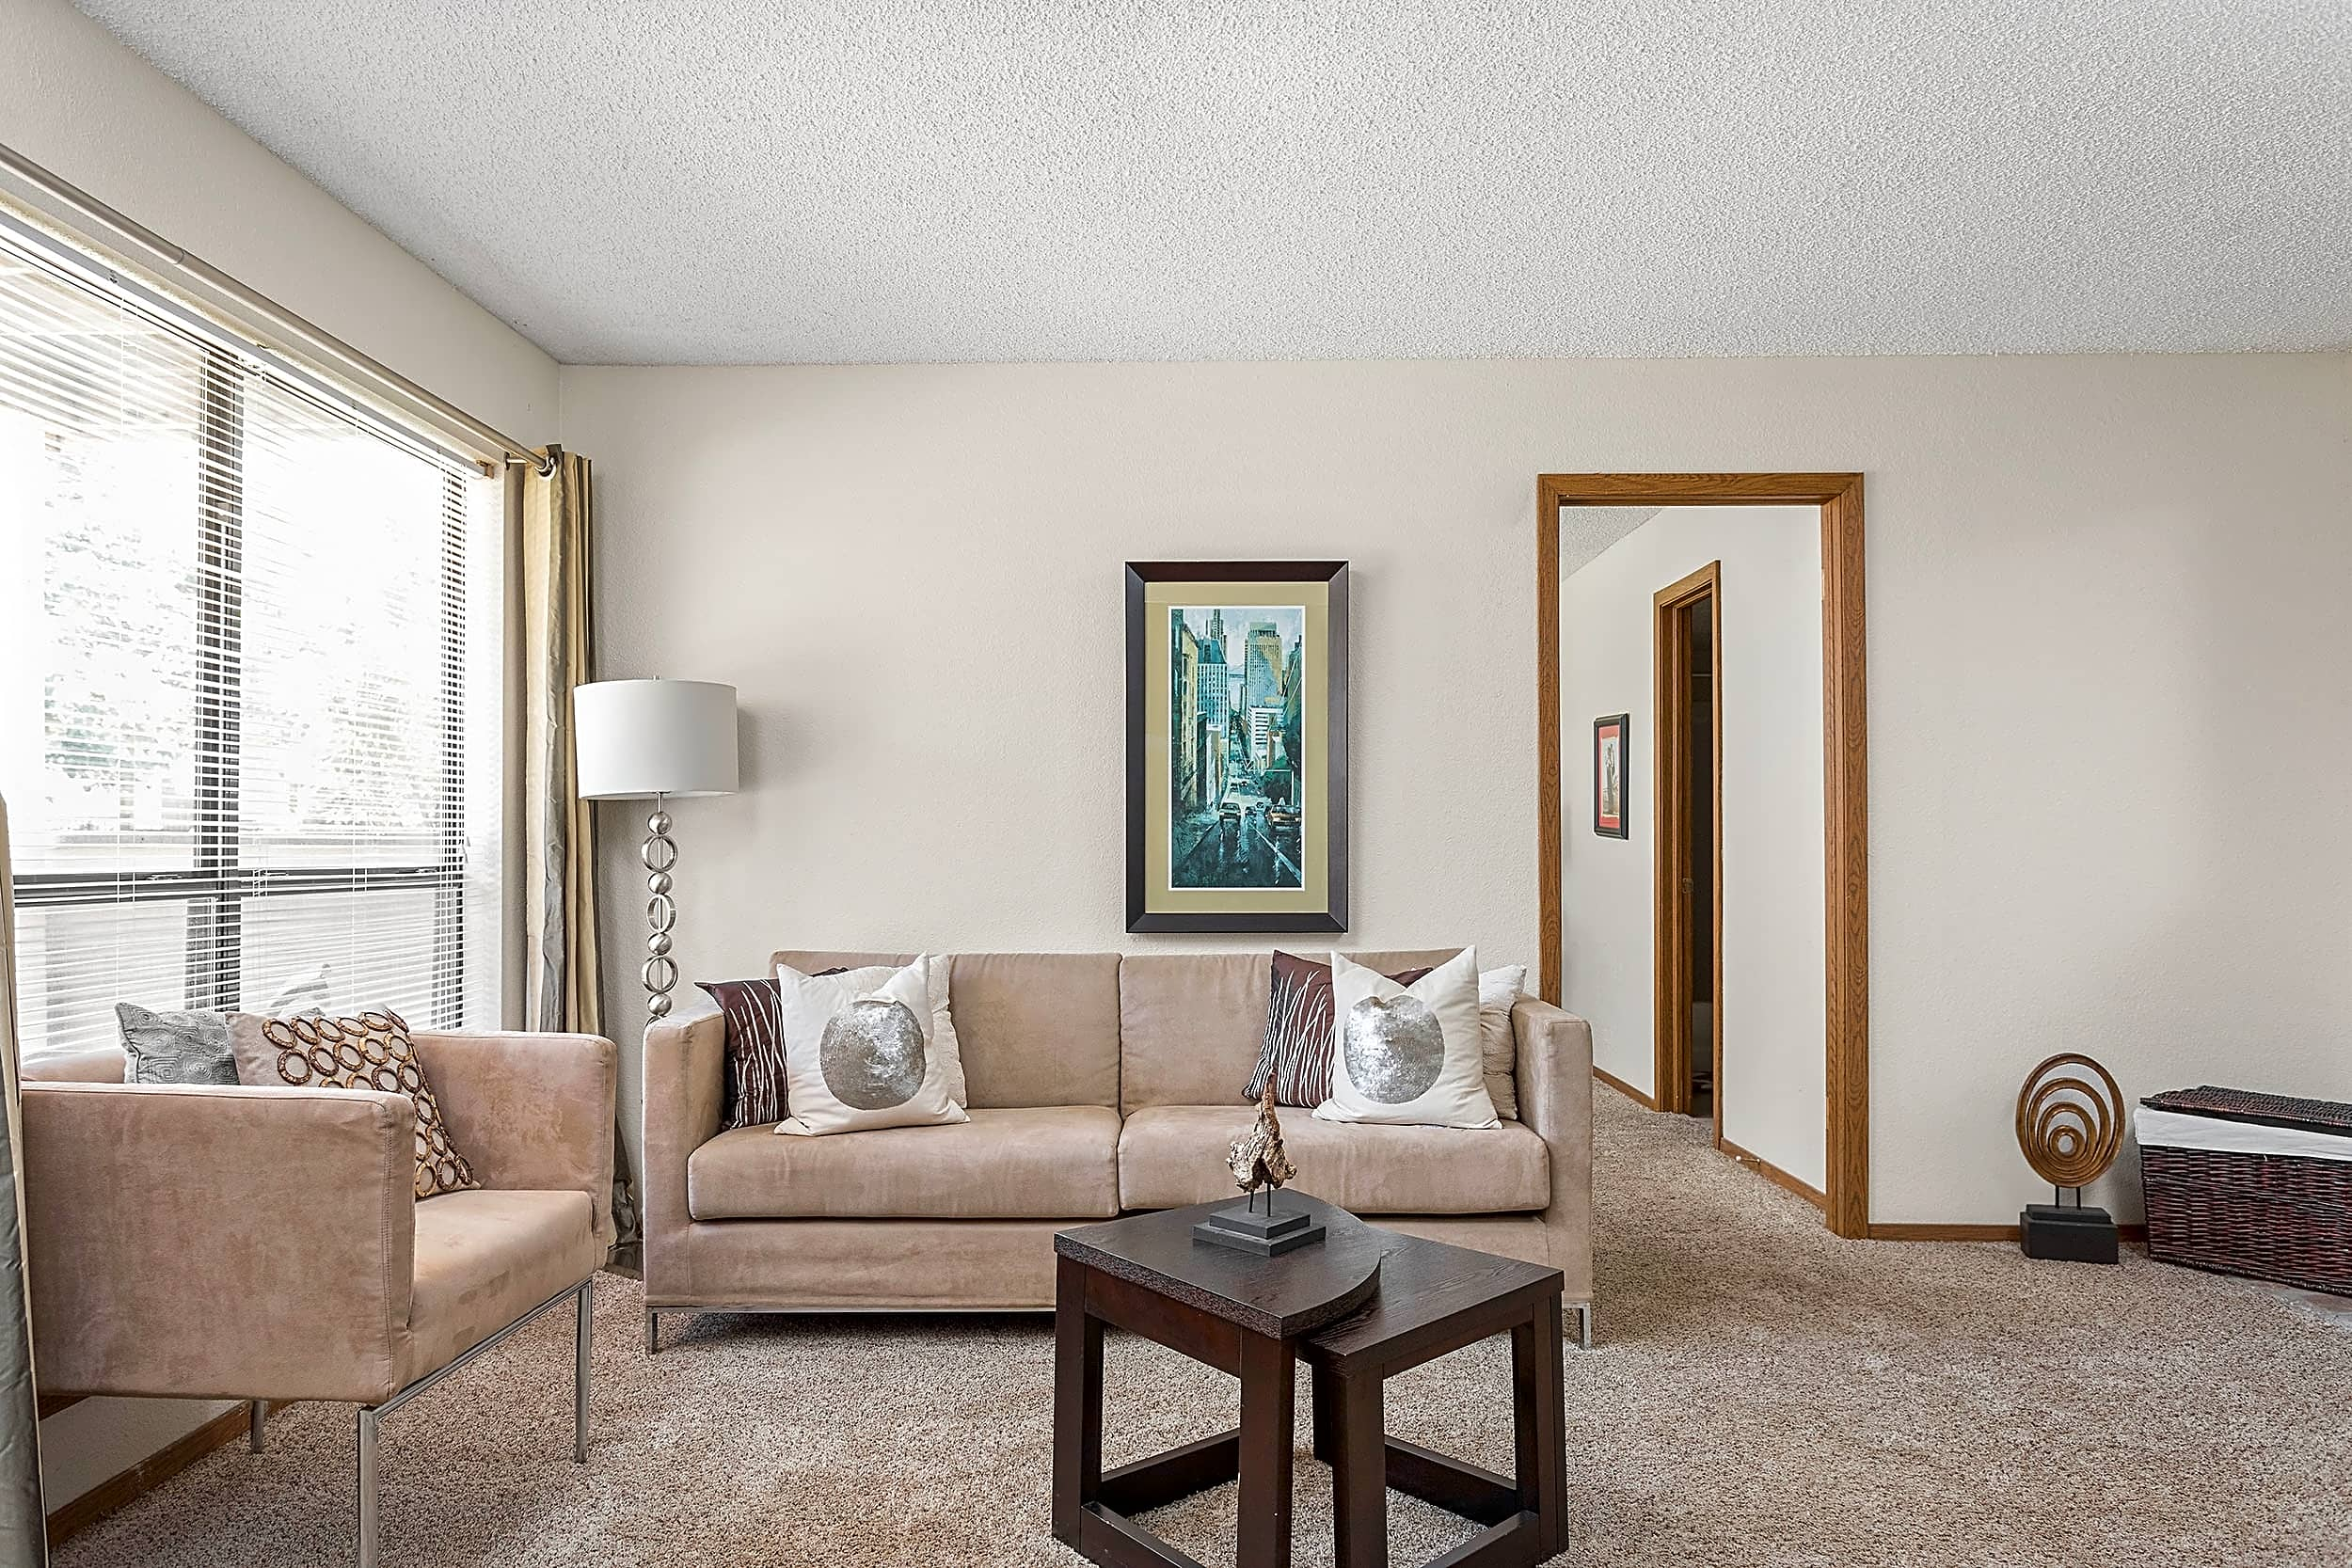 Spacious Living Room with Large Windows - Heritage Park Apartments